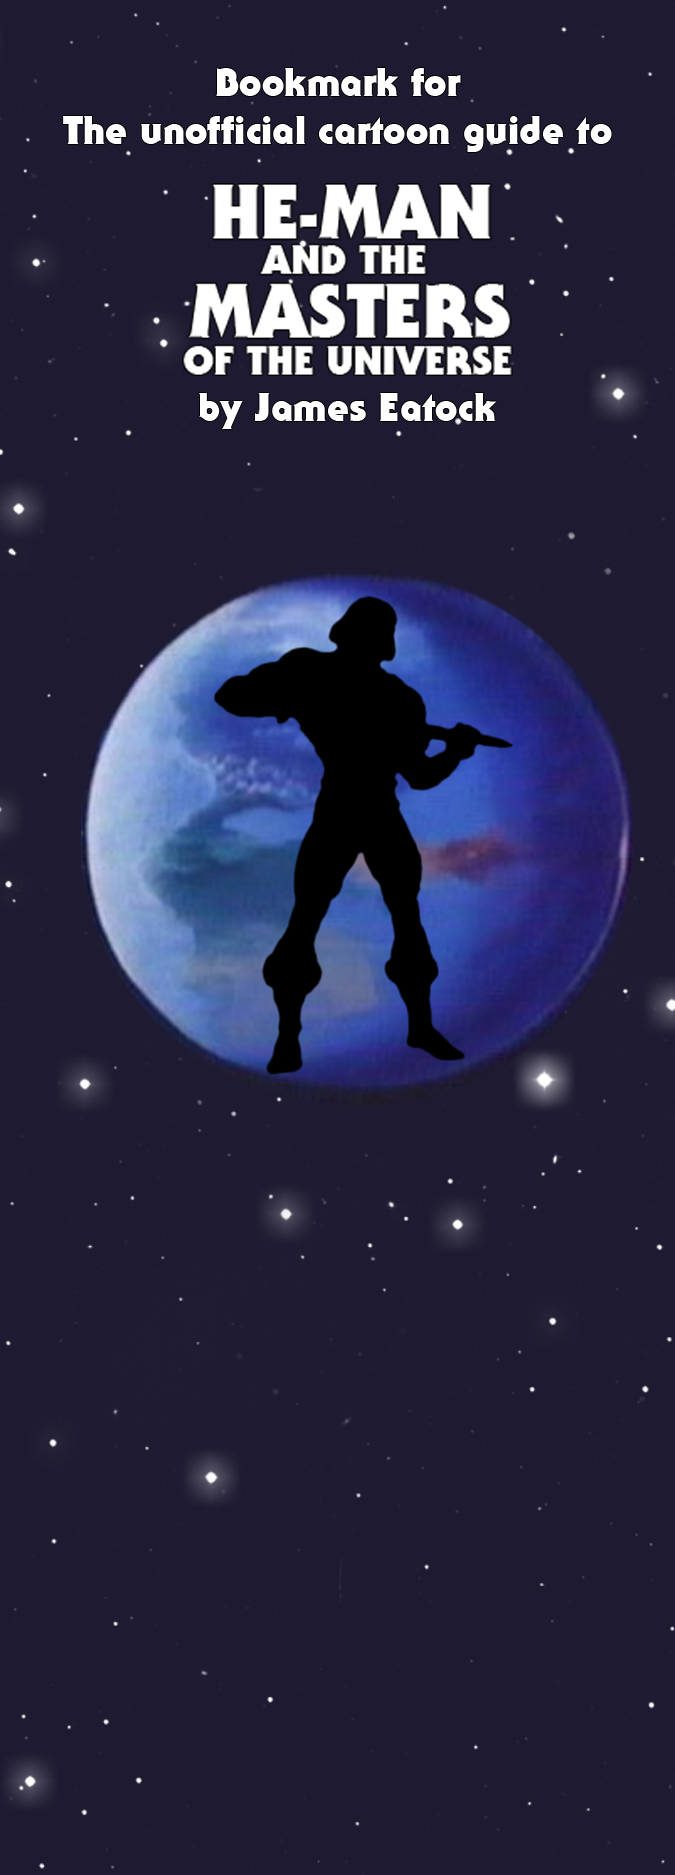 Bookmark for James Eatock's He-Man Book